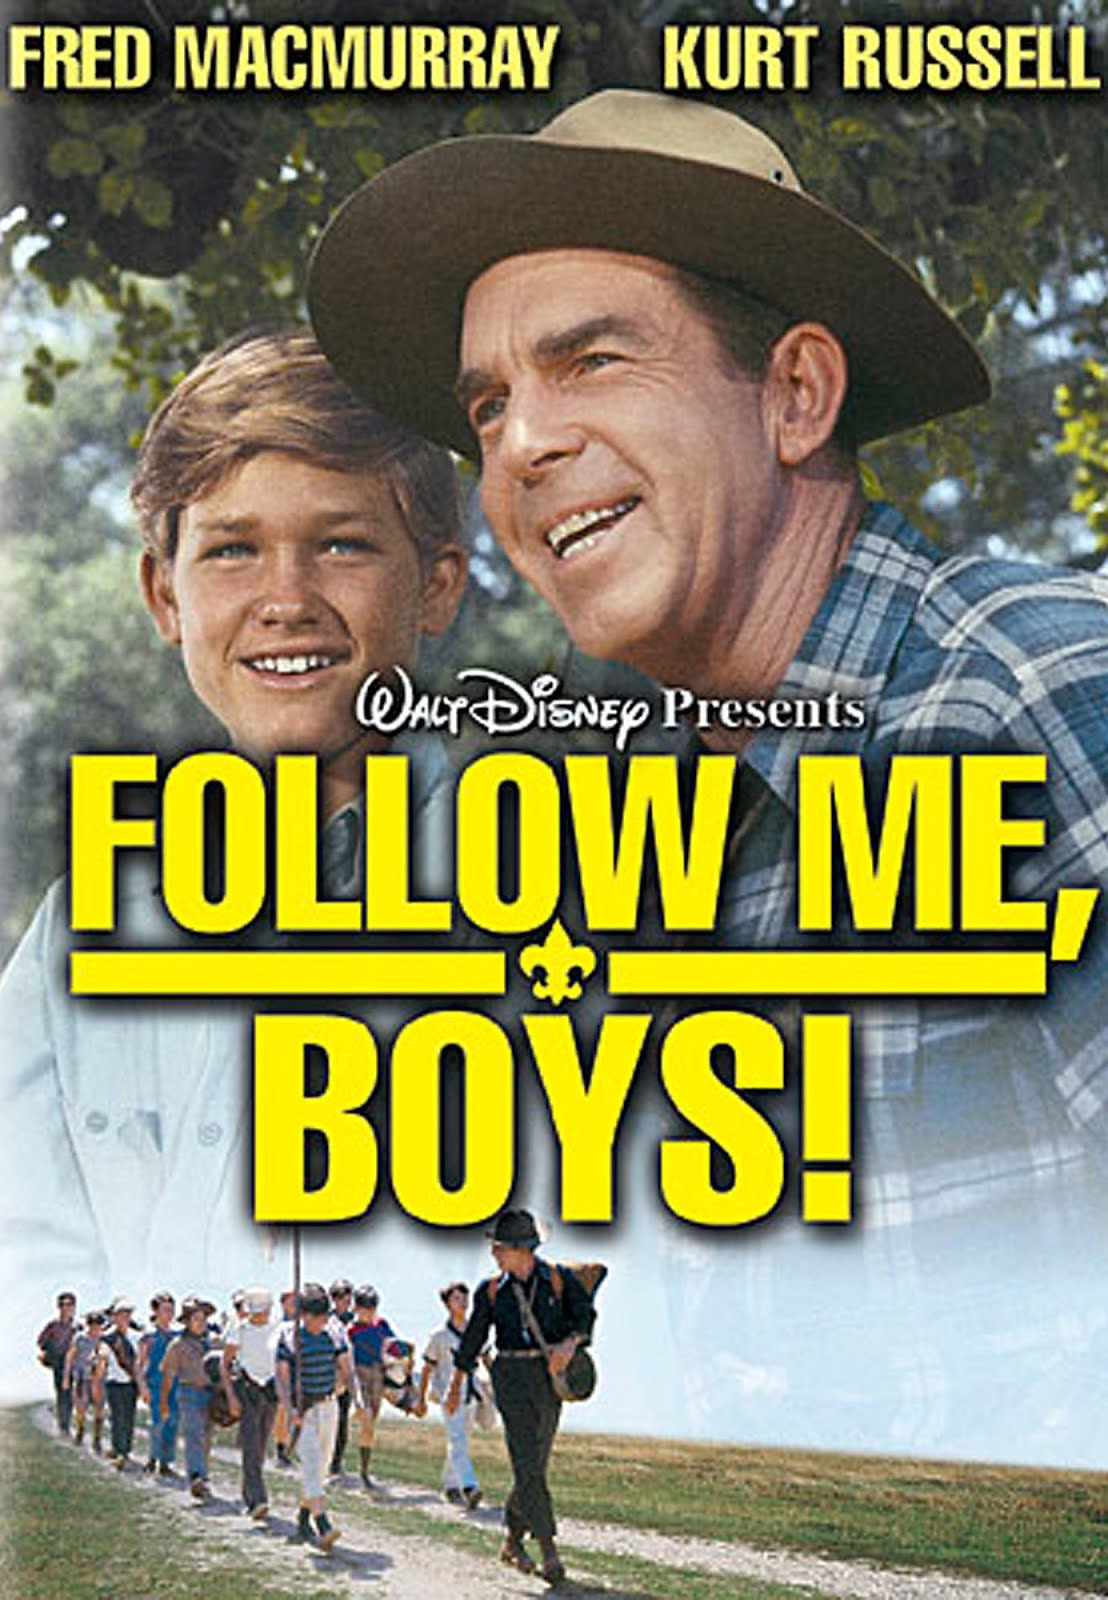 20 docenas de hijos - Follow me boys!